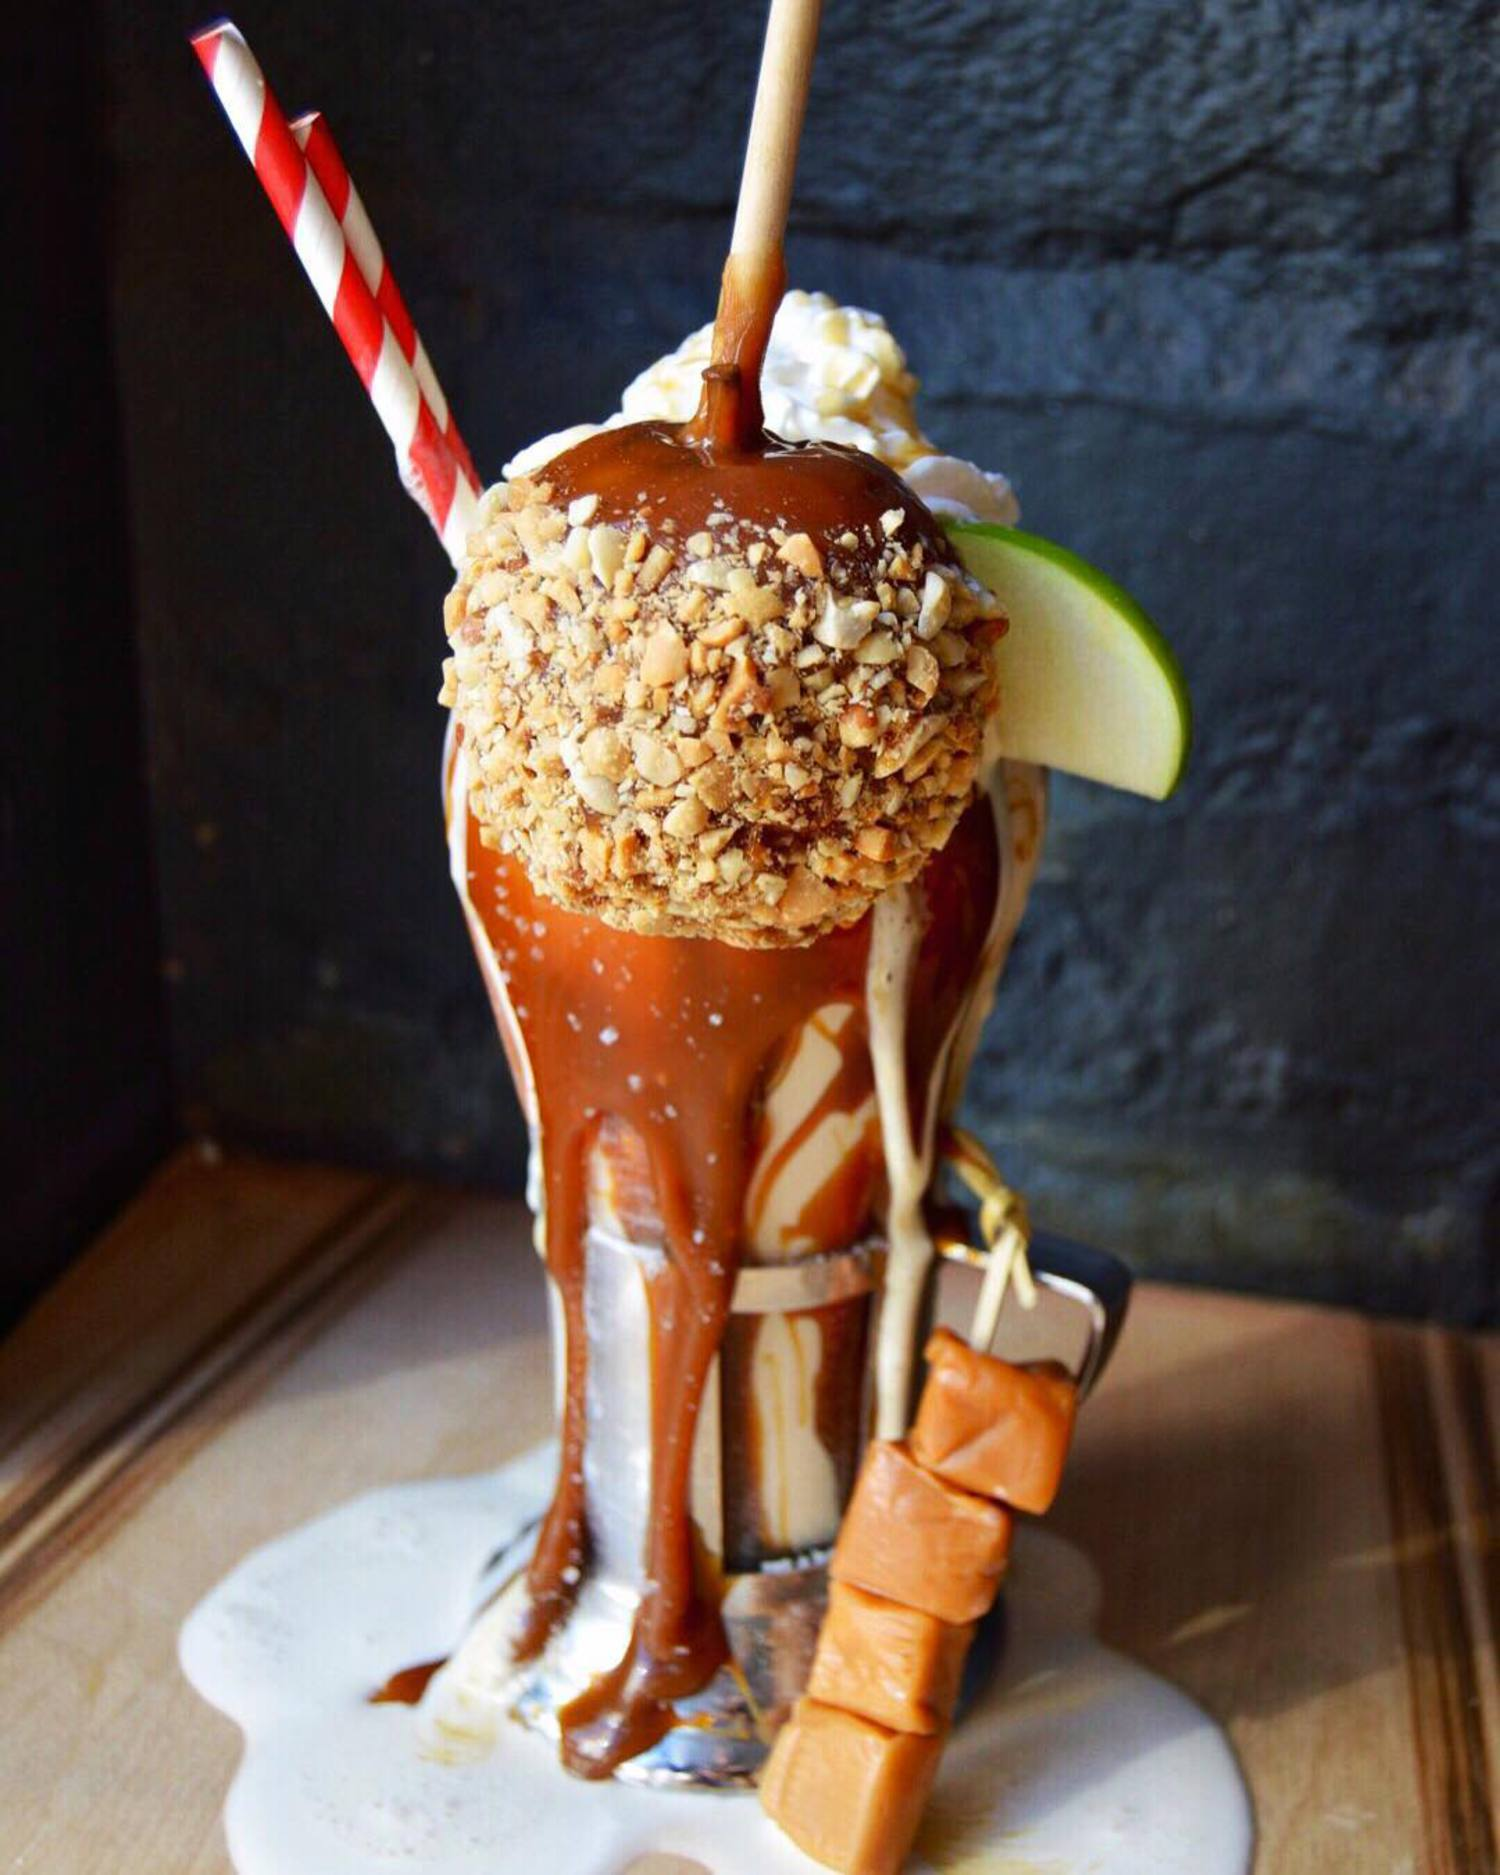 SALTED CARAMEL APPLE. 🍏🐮 #milkshakemonday #caramelapple #shake #foodie #foodporn #yum #desert #blacktapthat #blacktapnyc #burger #NYC #fall